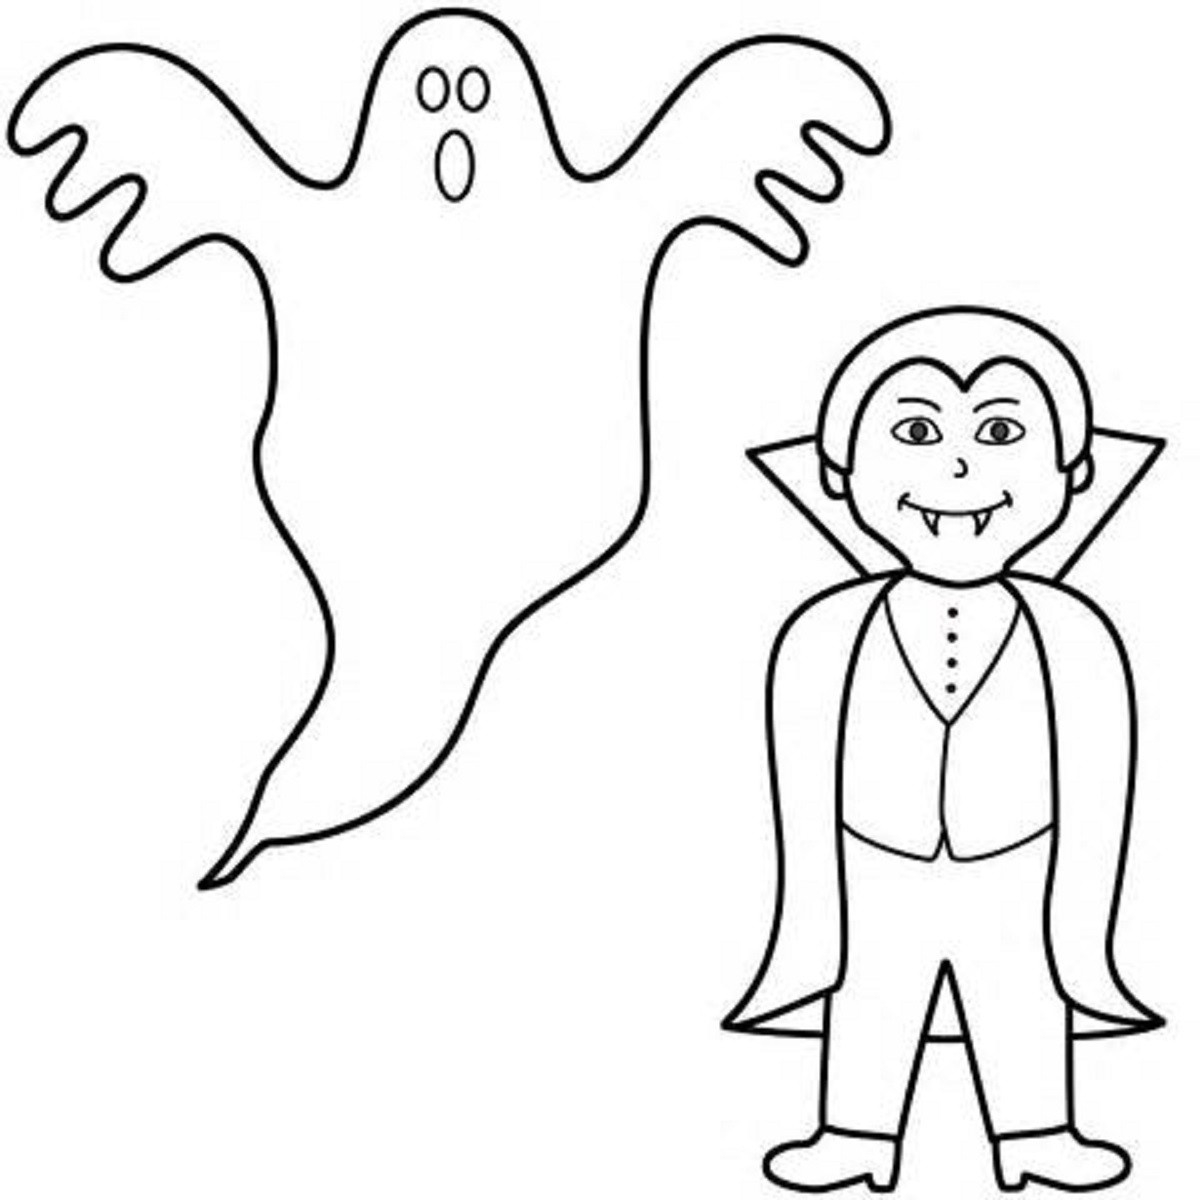 casper the ghost coloring pages disney casper gosht coloring sheet cartoon kids casper pages ghost coloring the